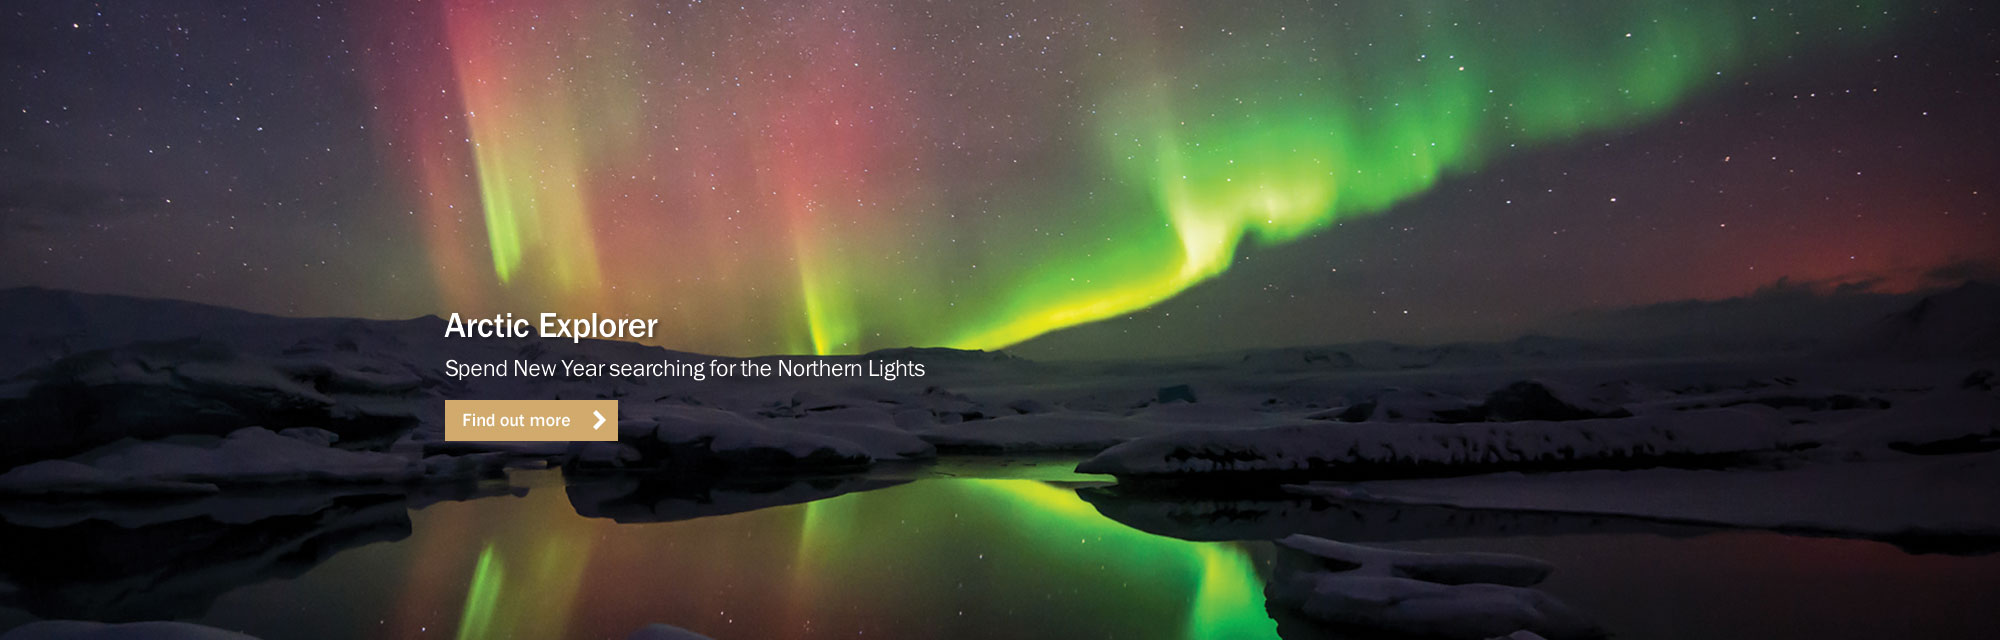 Arctic Explorer Northern Lights Holiday